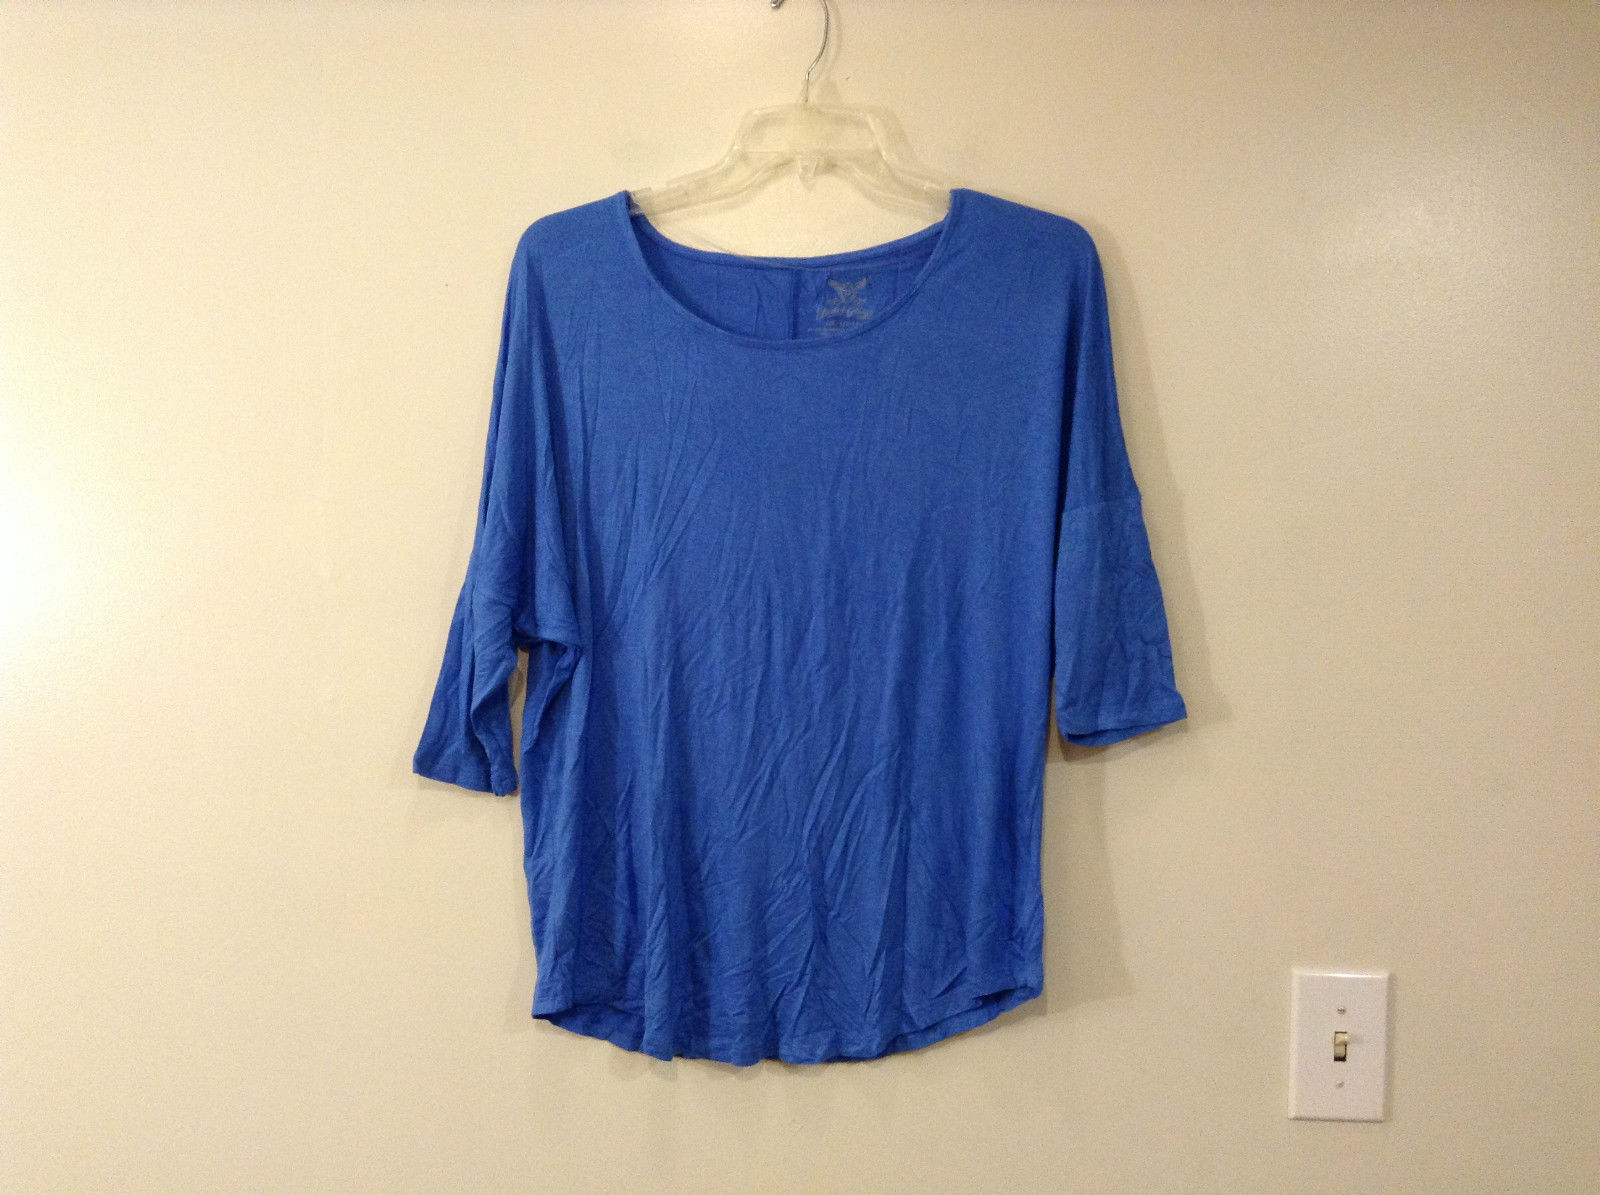 Royal Blue Faded Glory Deep Scoop Neck Top Size Large 12 to 14